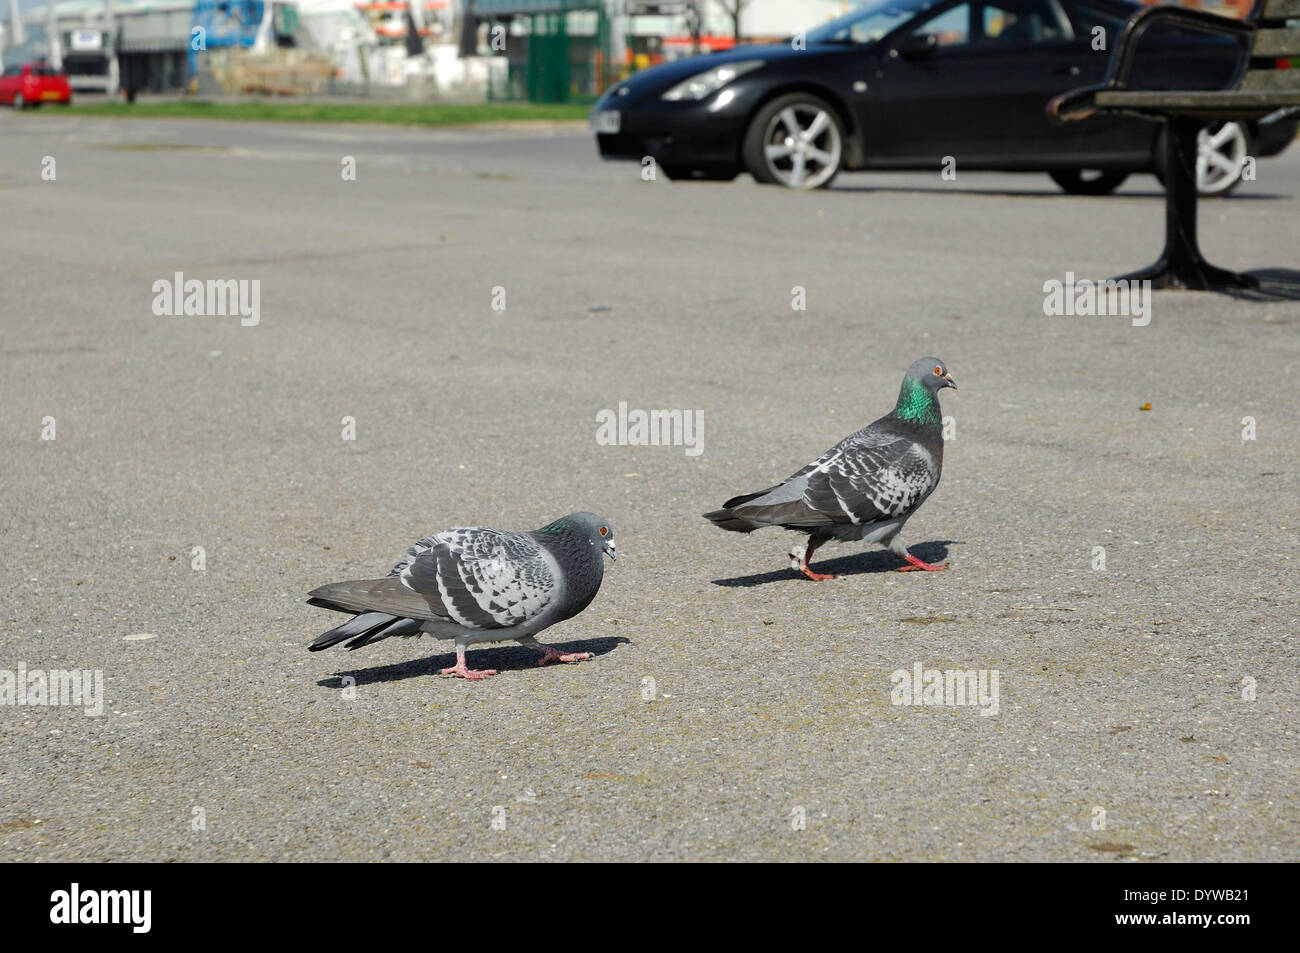 Male pigeon trying to impress female pigeon in carpark - Stock Image